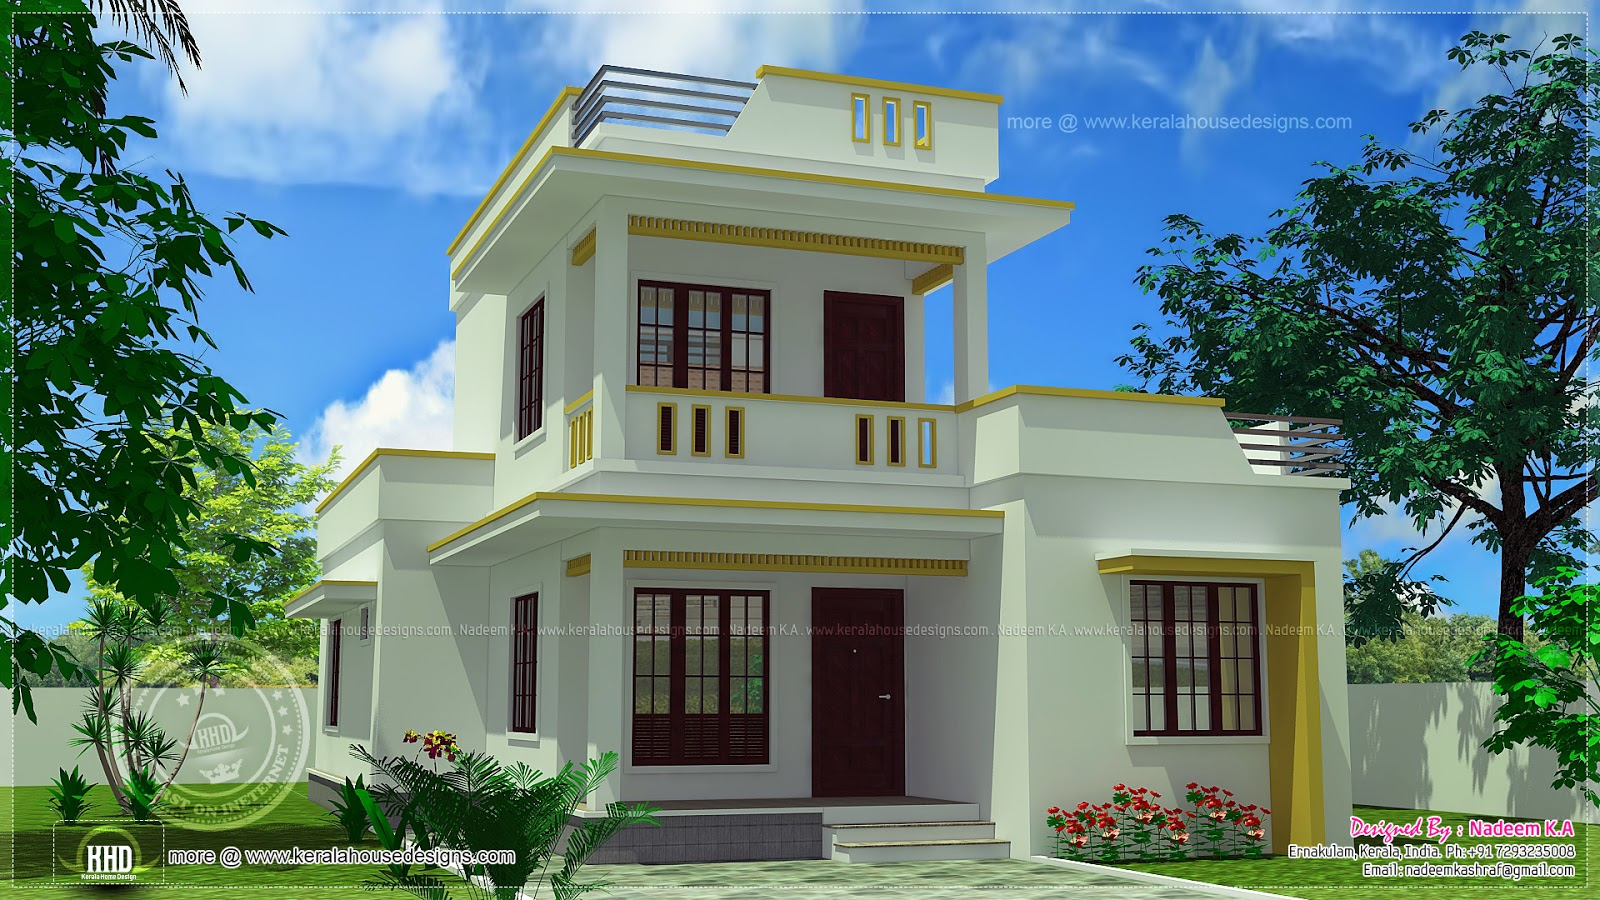 August 2013 kerala home design and floor plans New build house designs